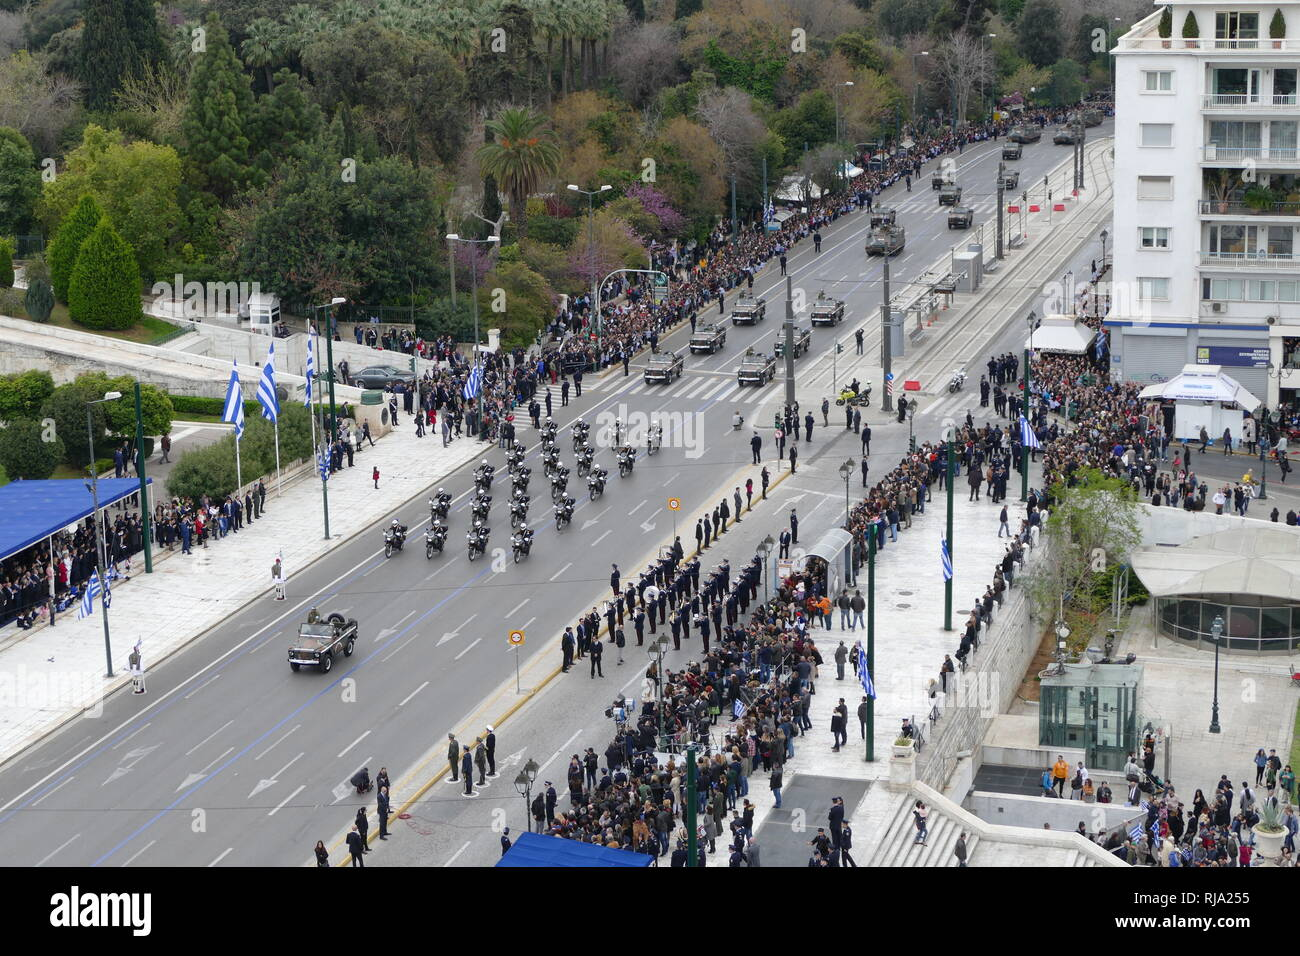 Greek military, parade in Athens for the 2018 Independence Day Celebrations. Greece is a member of the North Atlantic Treaty Organization (NATO). Stock Photo